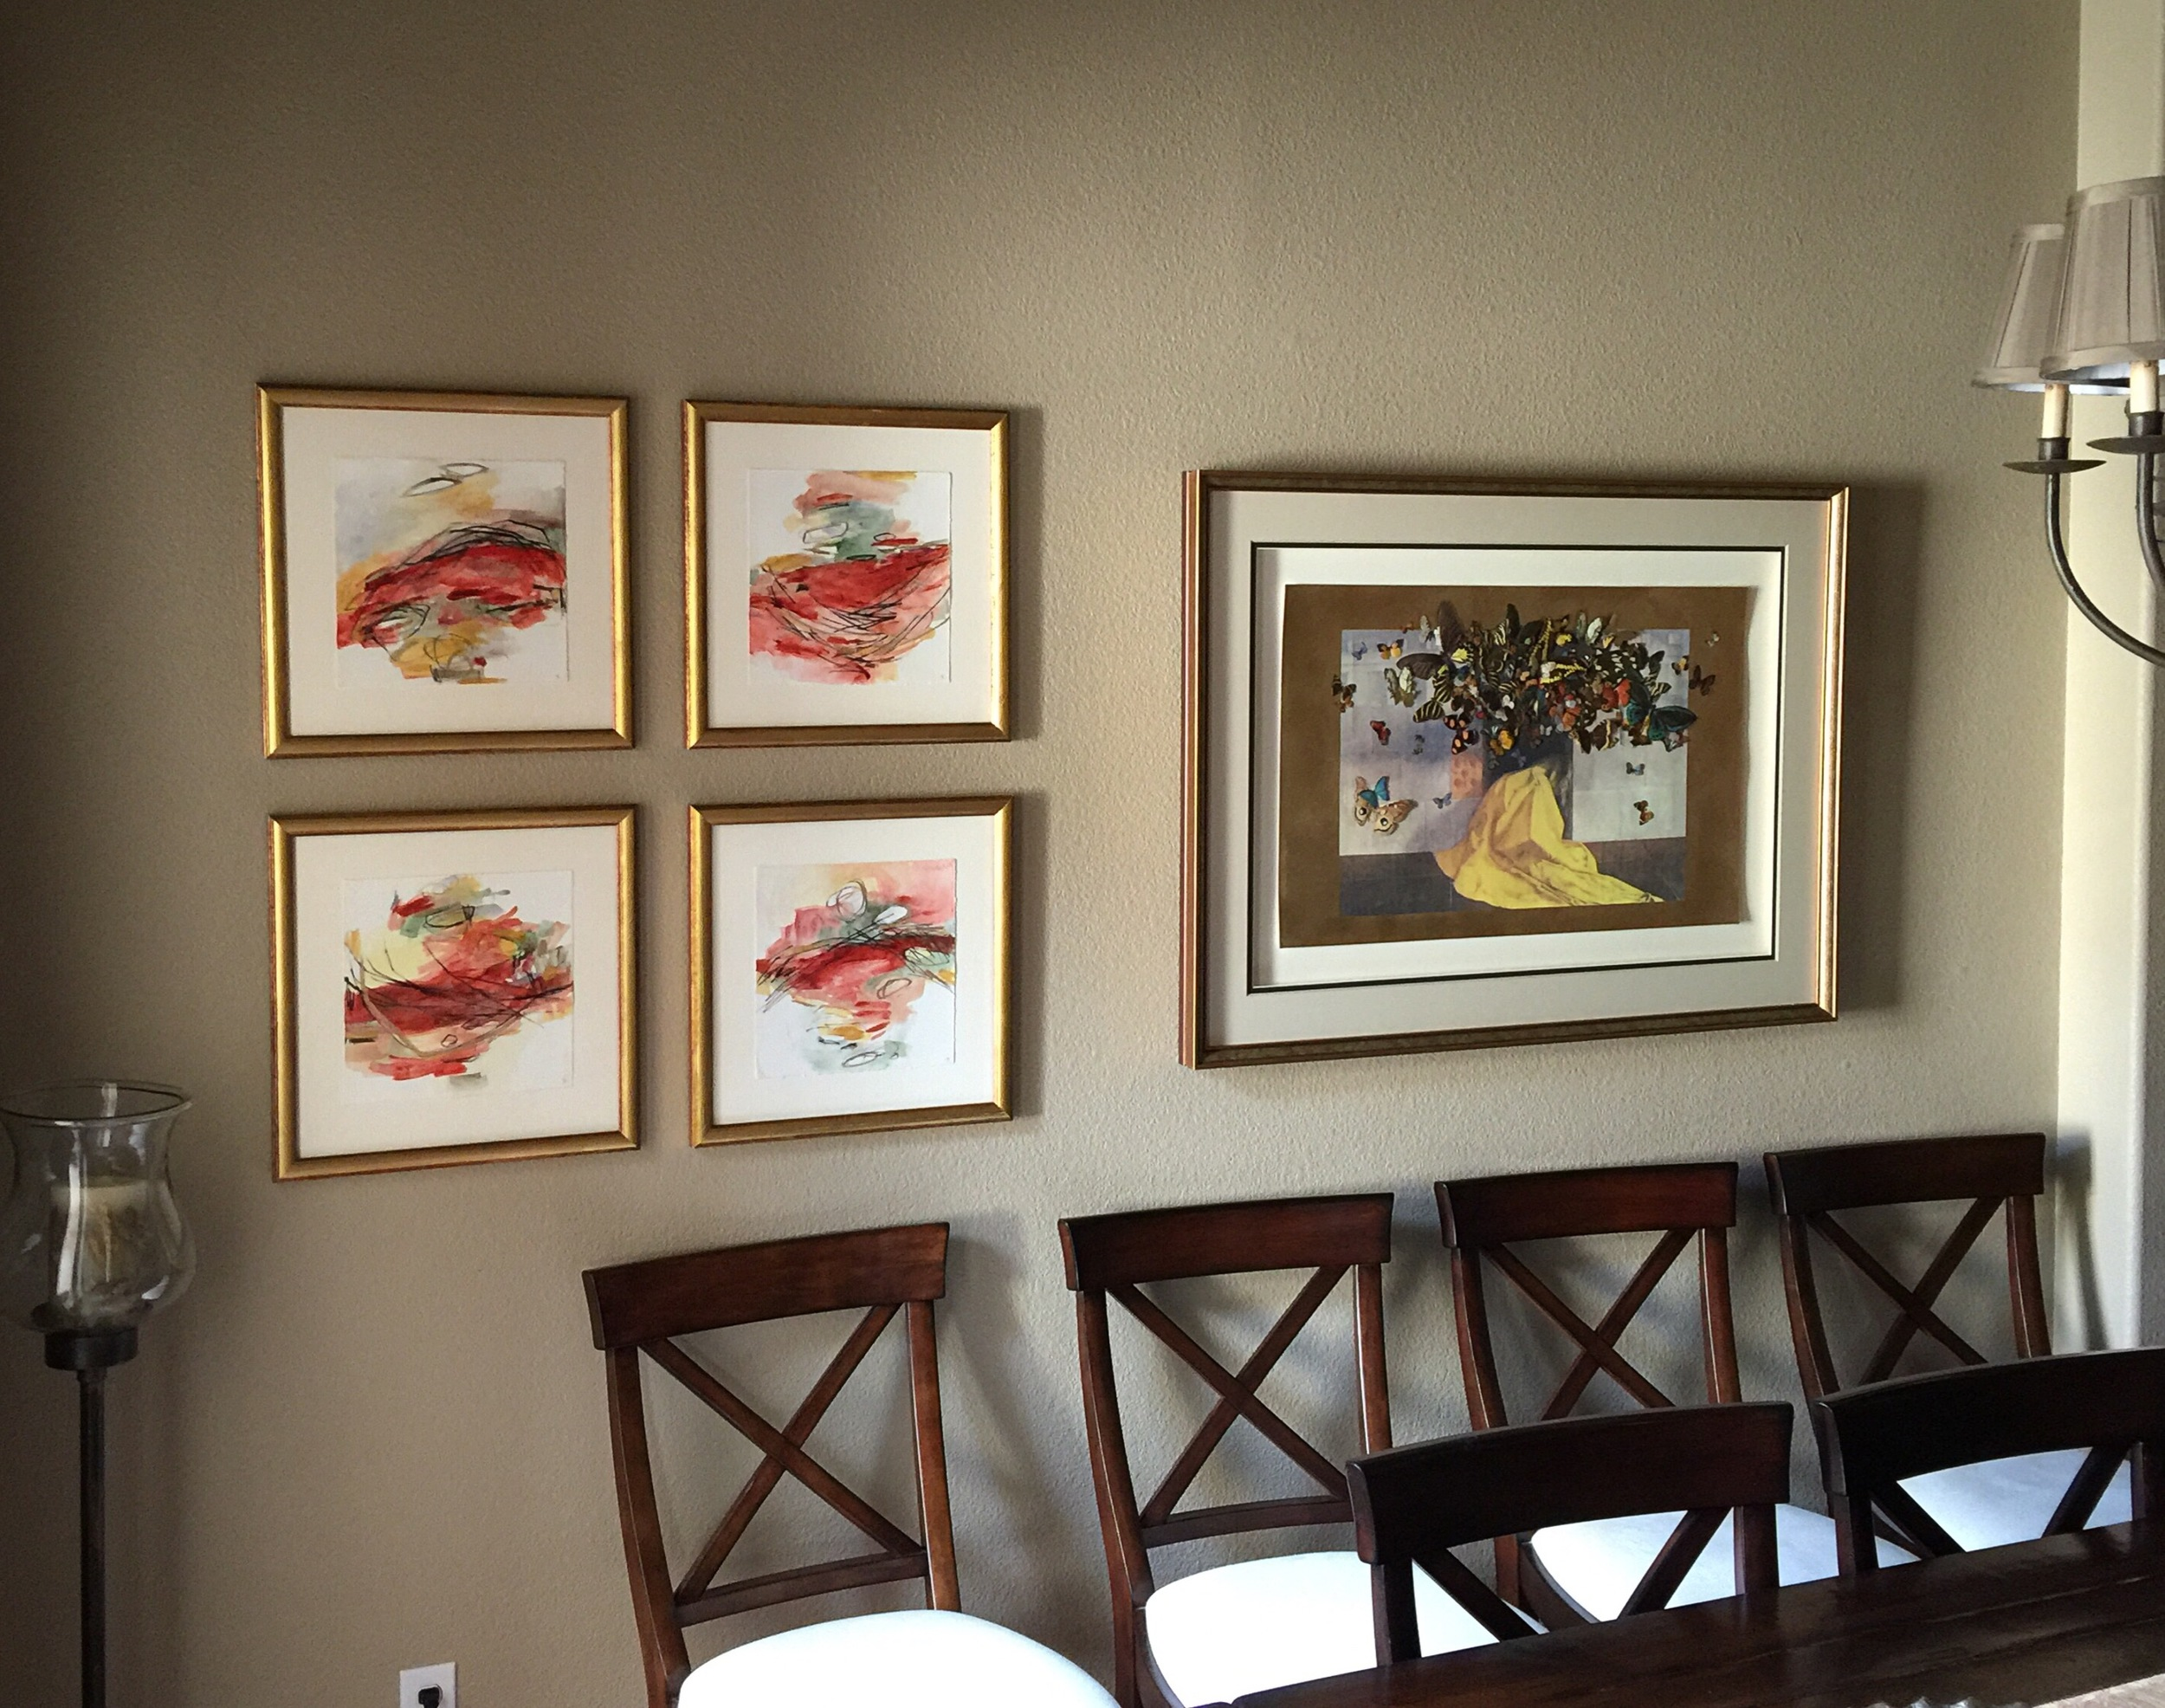 Commission of four works on paper, installed in a client's home. For information about commissions, email me at jbrucker@icloud.com.